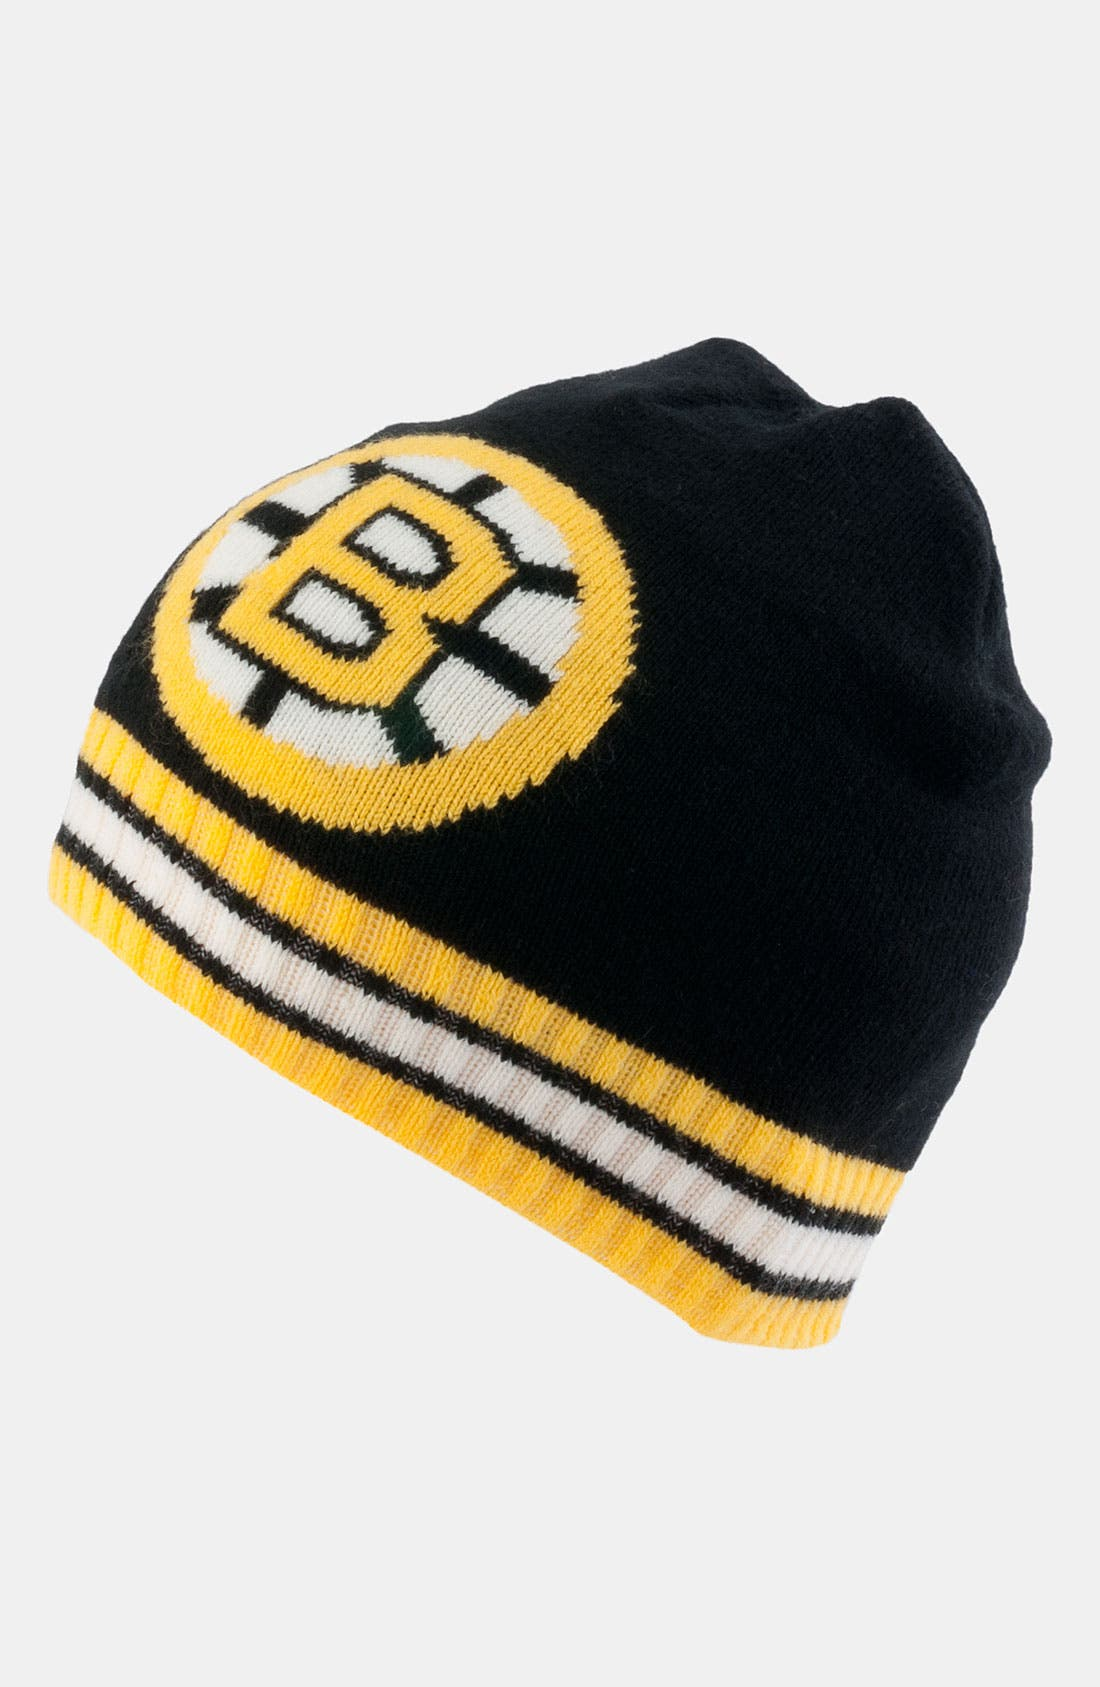 Alternate Image 1 Selected - American Needle 'Boston Bruins - Right Wing' Knit Hat